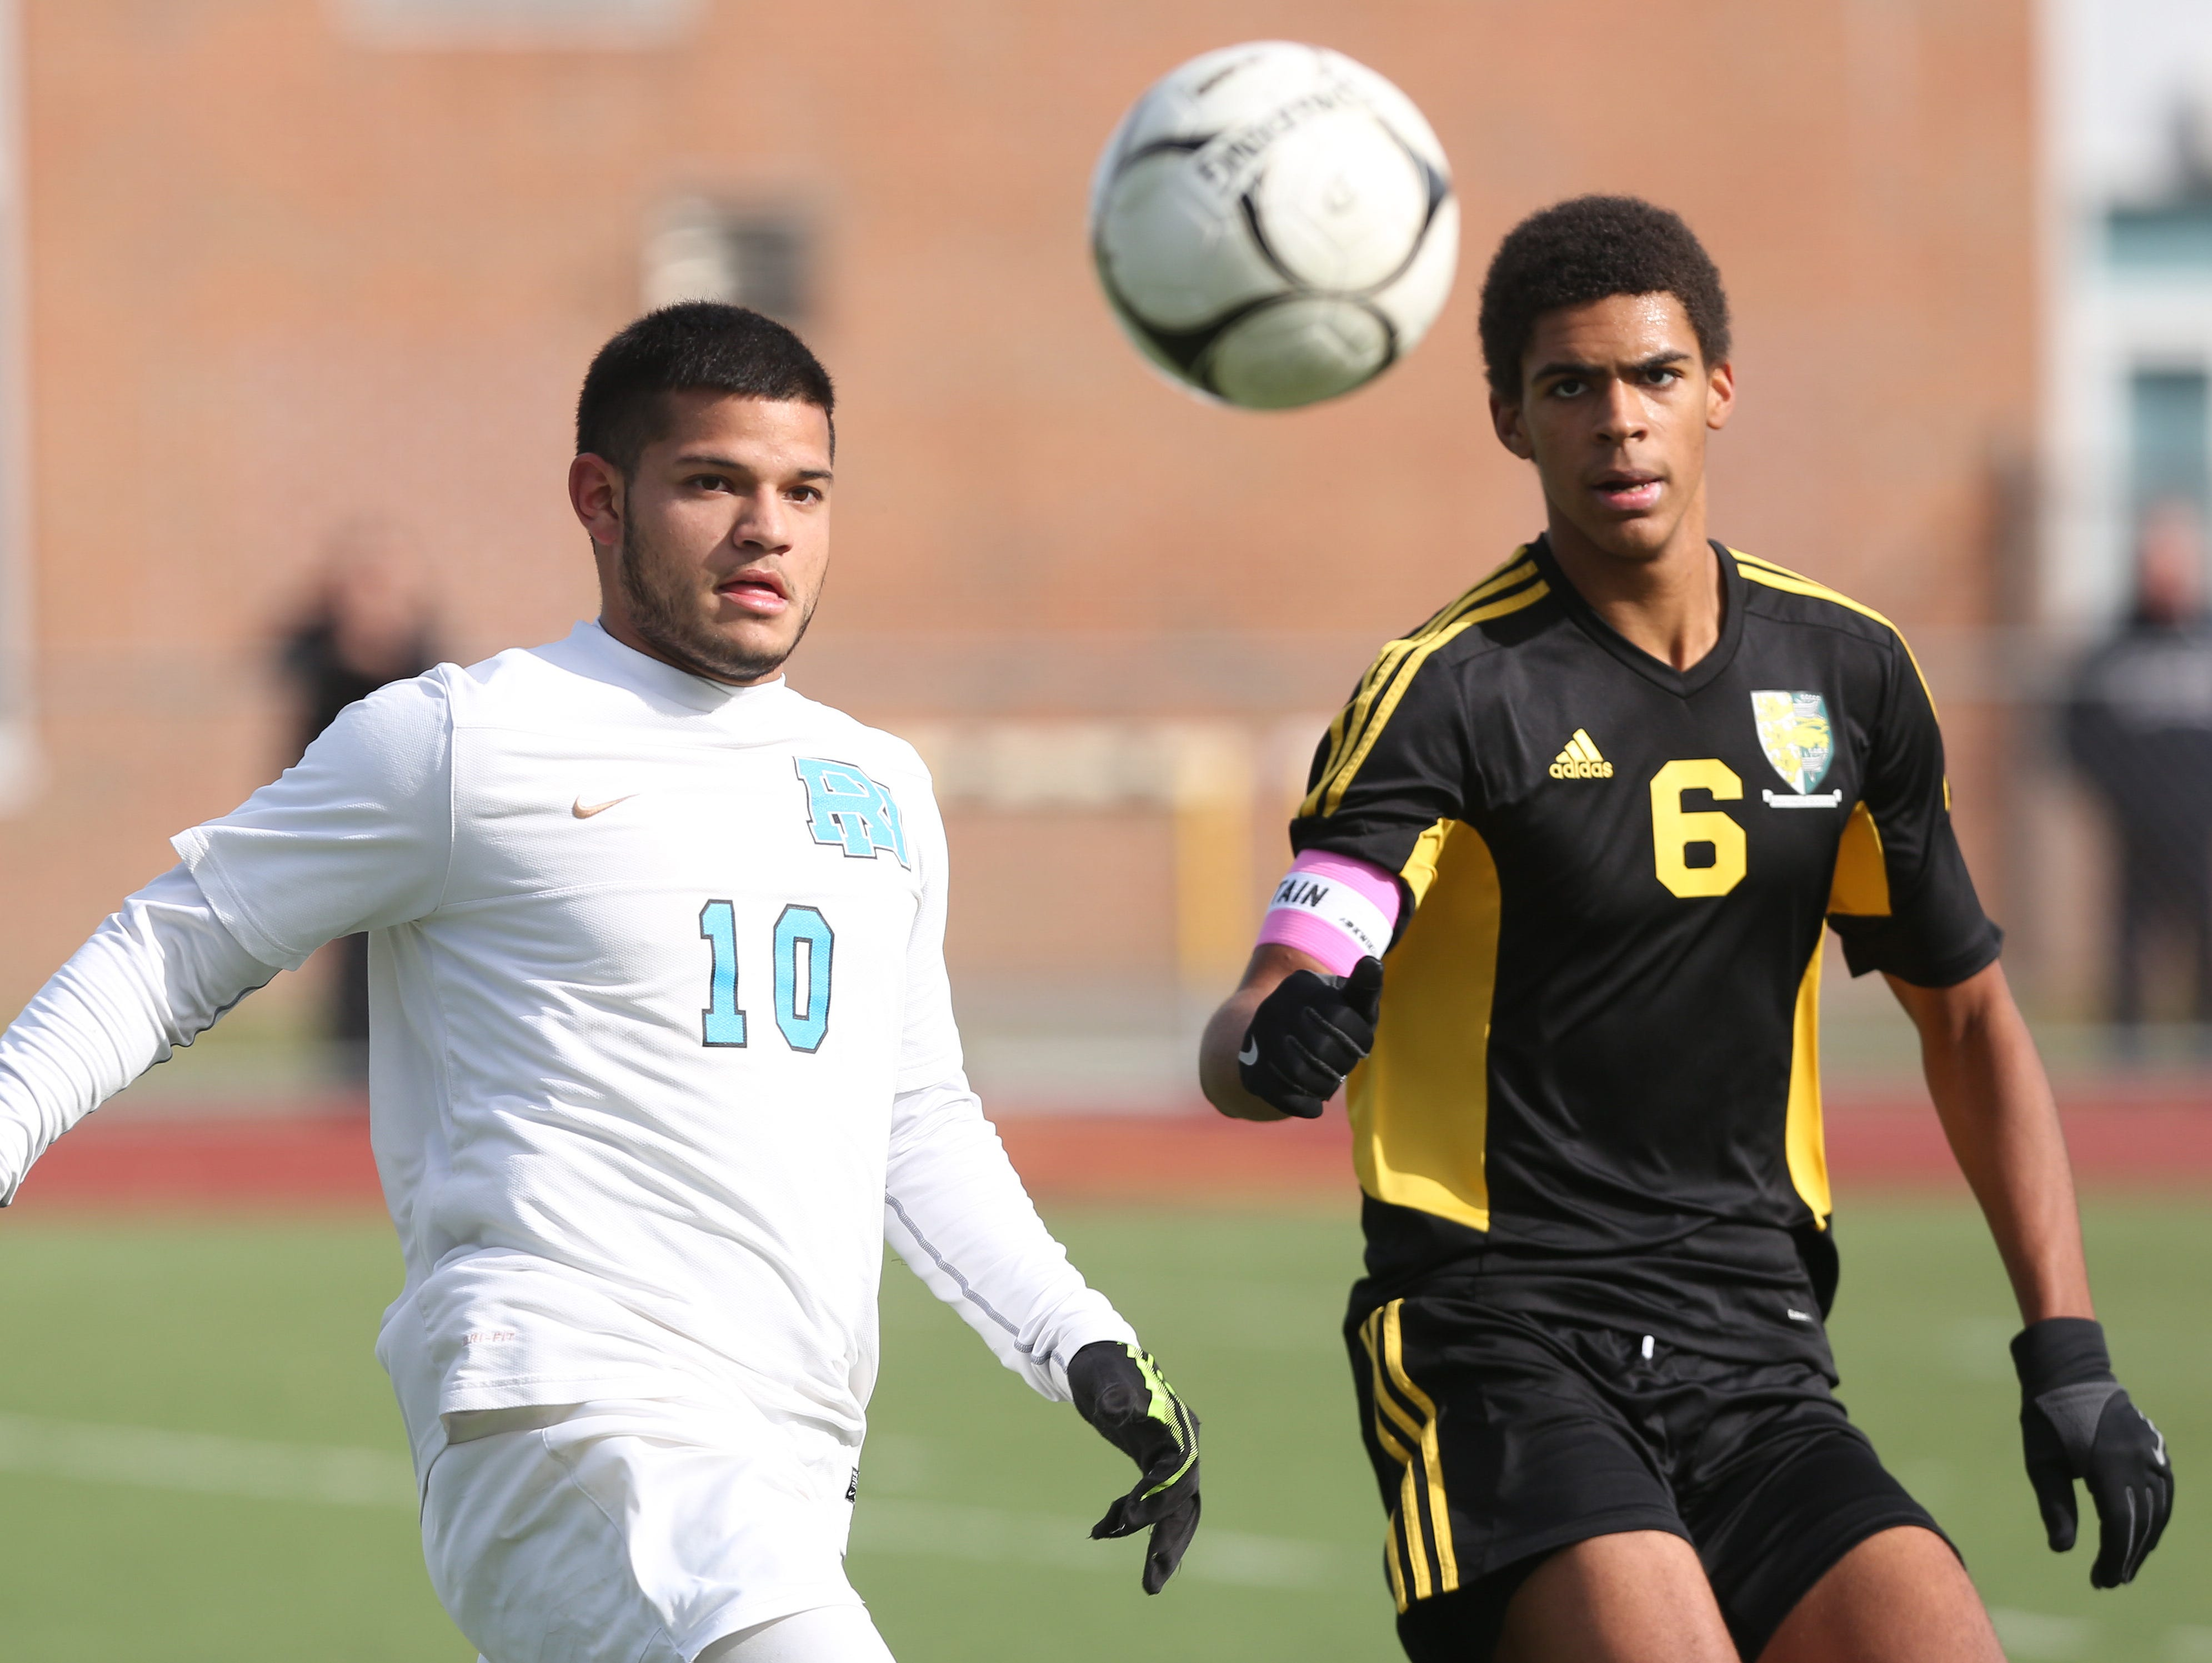 Hastings defeated Rye Neck 1-0 in the boys soccer Section 1 Class B championship game at Lakeland High School in Shrub Oak High School Oct. 29, 2016.